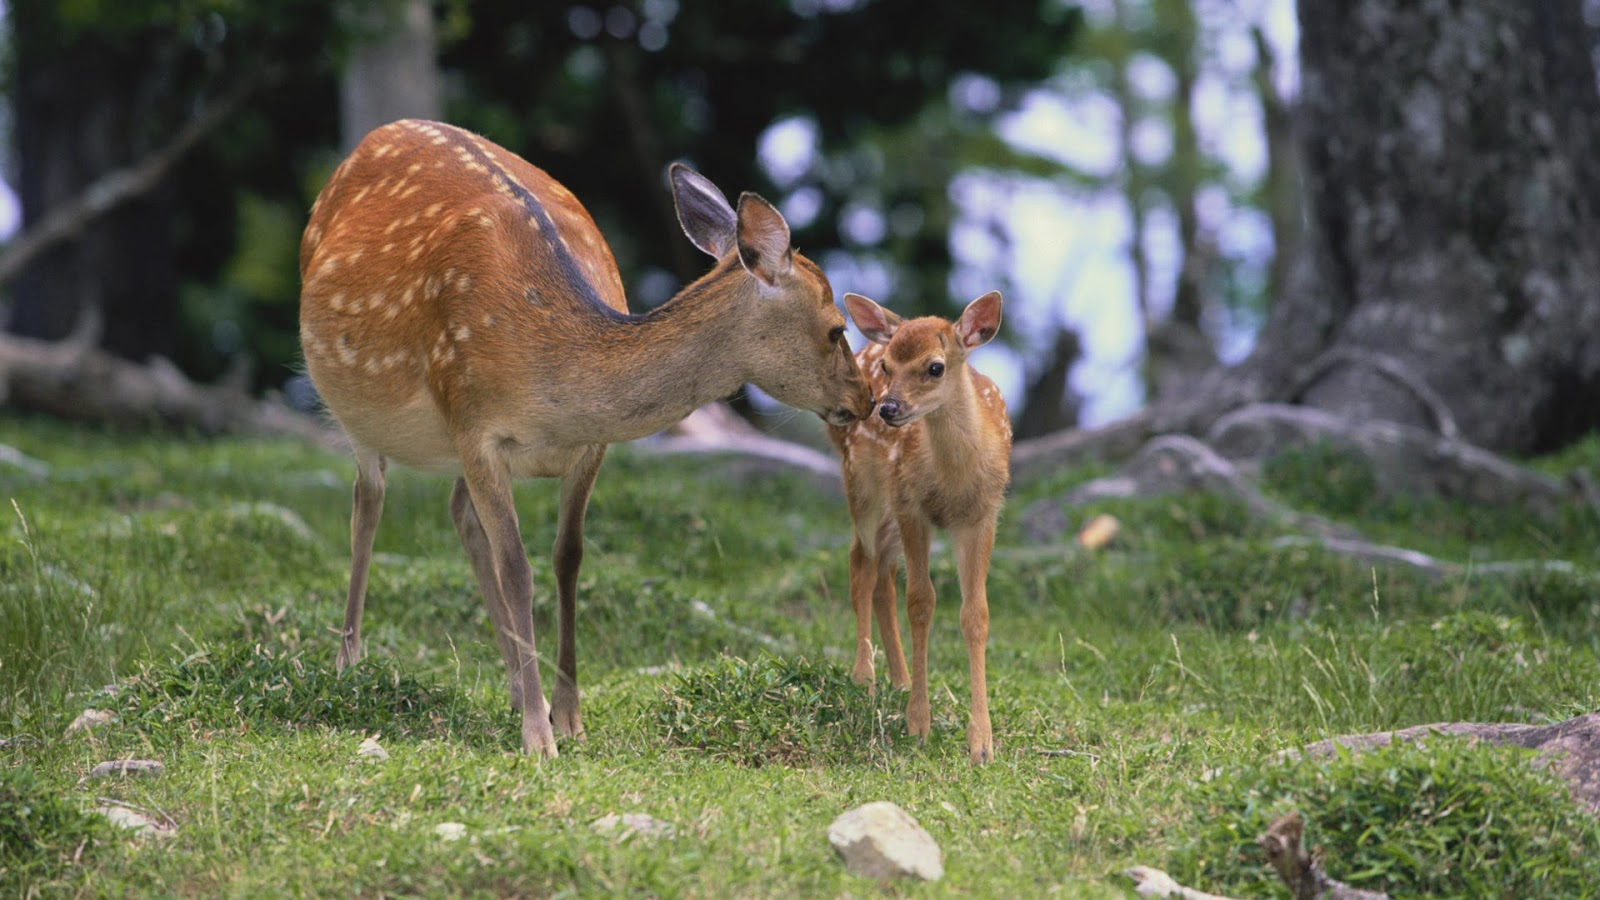 deer island asian dating website Arrangements can be made through the backpackers miyajima, and website an old-school japanese ryokan dating back to tame deer amble around the island.